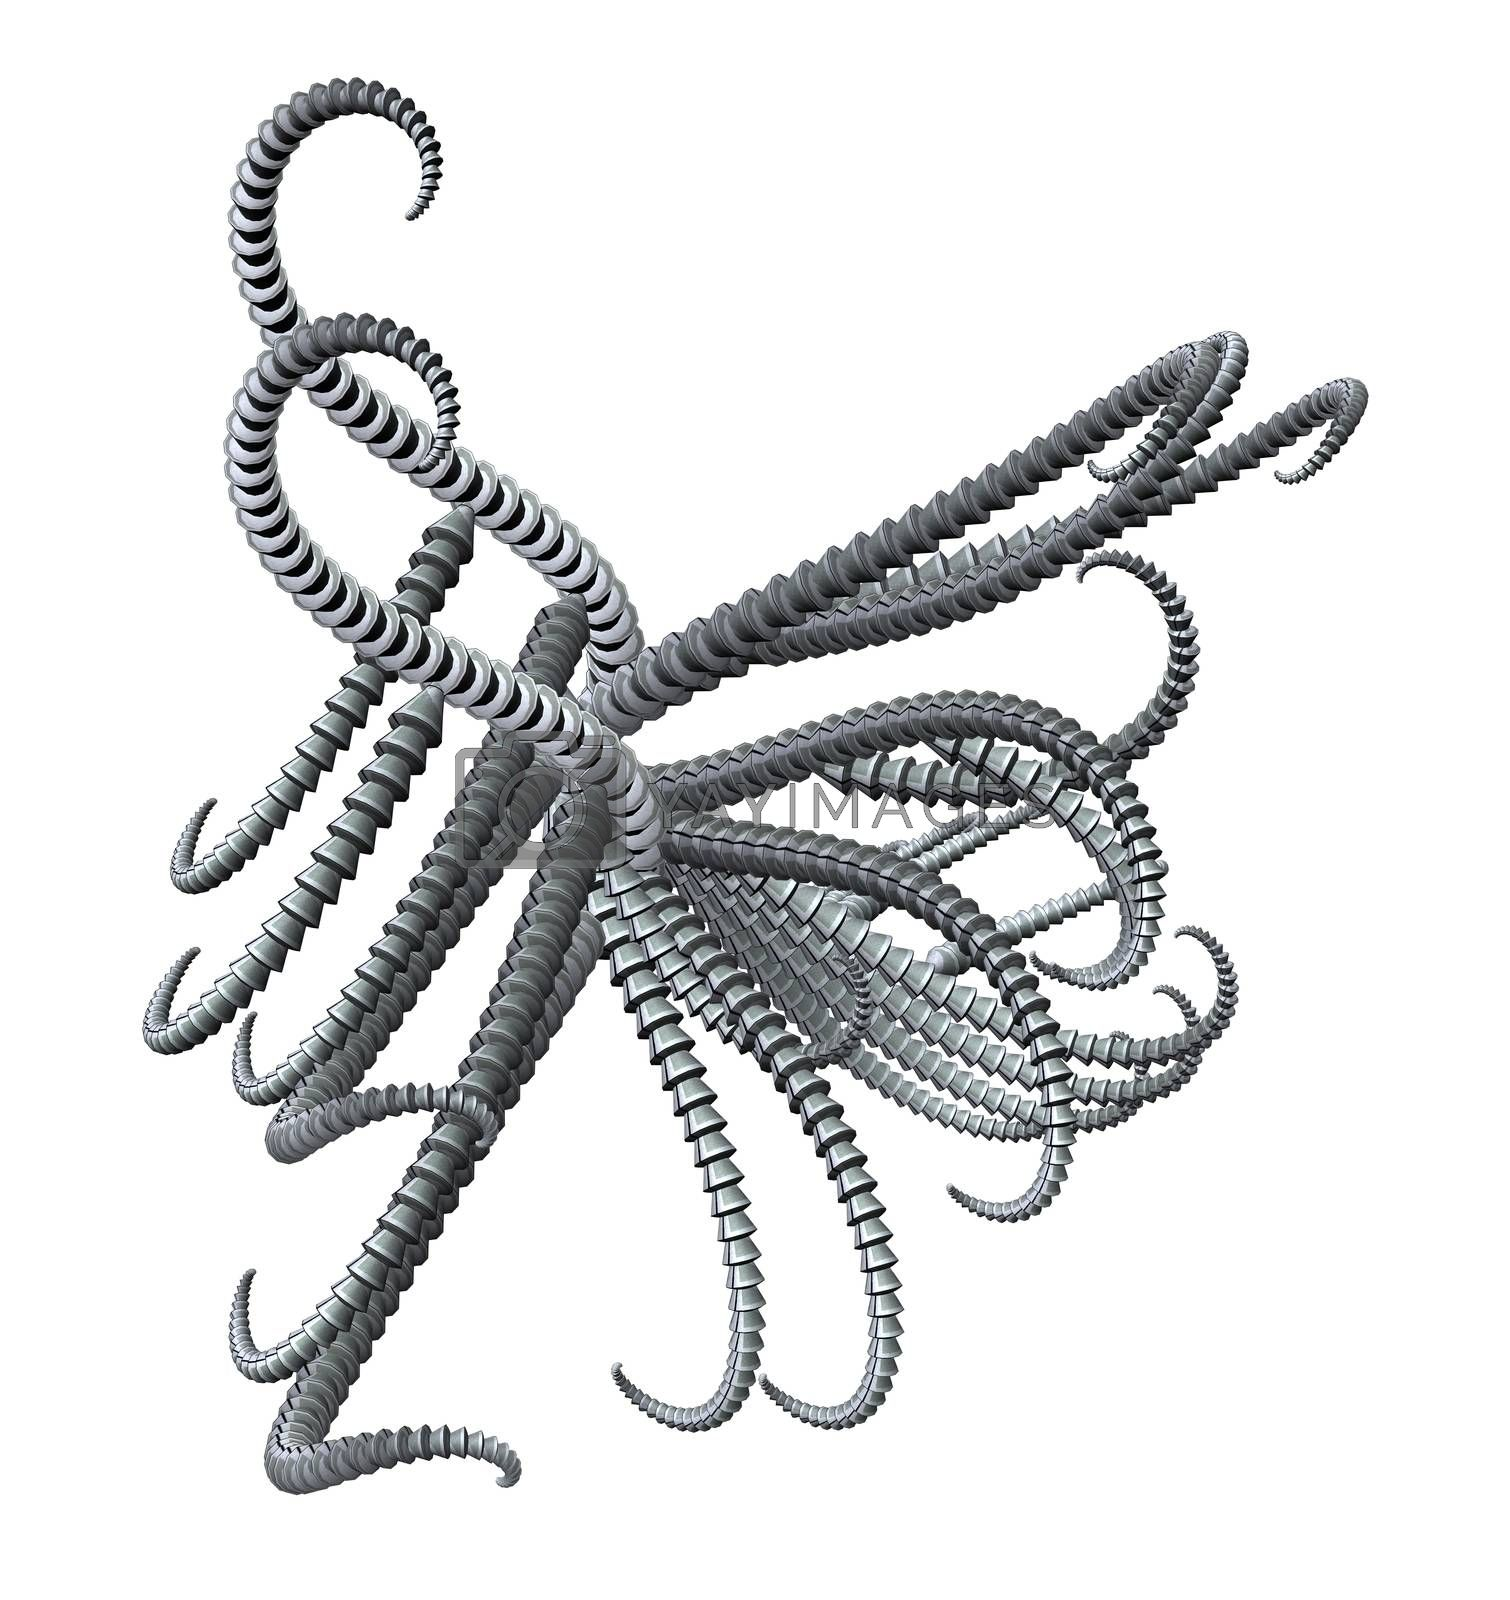 Royalty free image of metal tentacles by drizzd